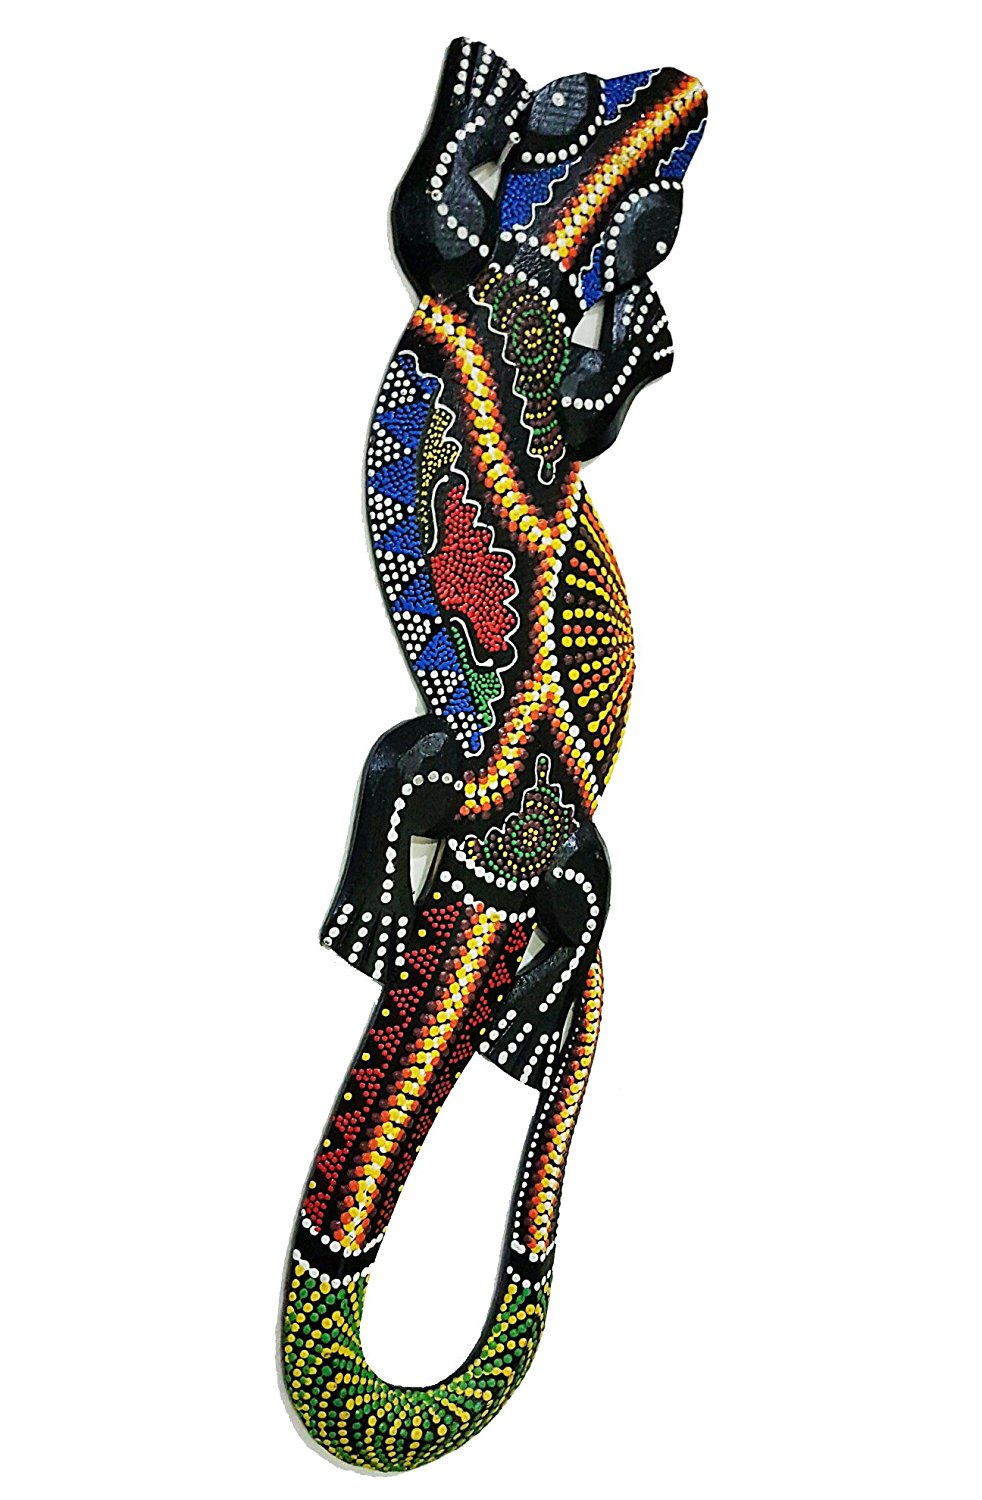 Buy Dot Painted Gecko Wooden Wall Hanging Lizard (Aboriginal Art) In Within Most Popular Gecko Wall Decor (Gallery 15 of 20)